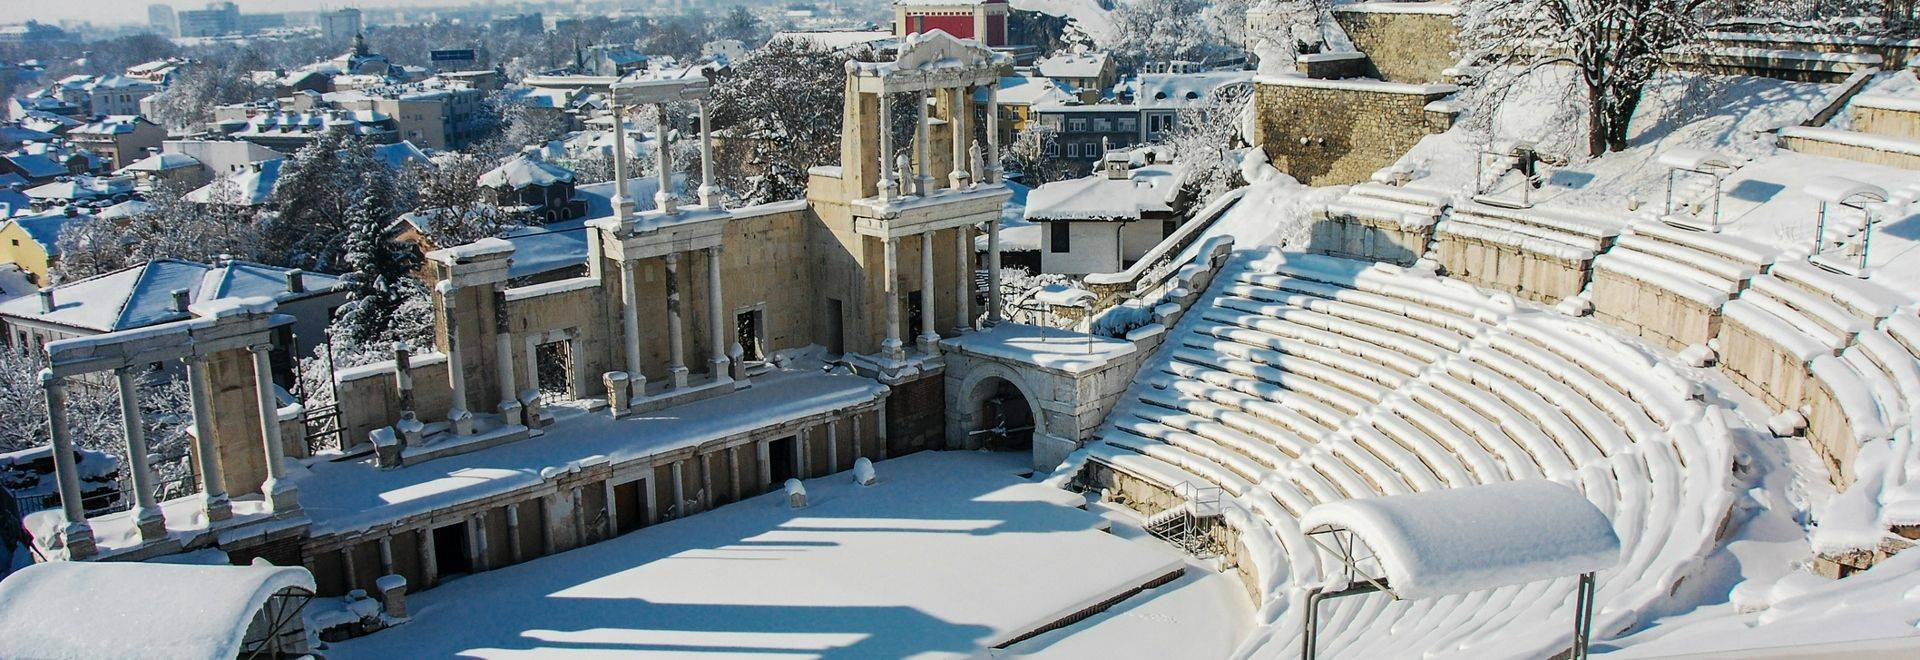 Ancient Roman theatre build 2nd century,  covered by snow, Plovdiv Bulgaria.